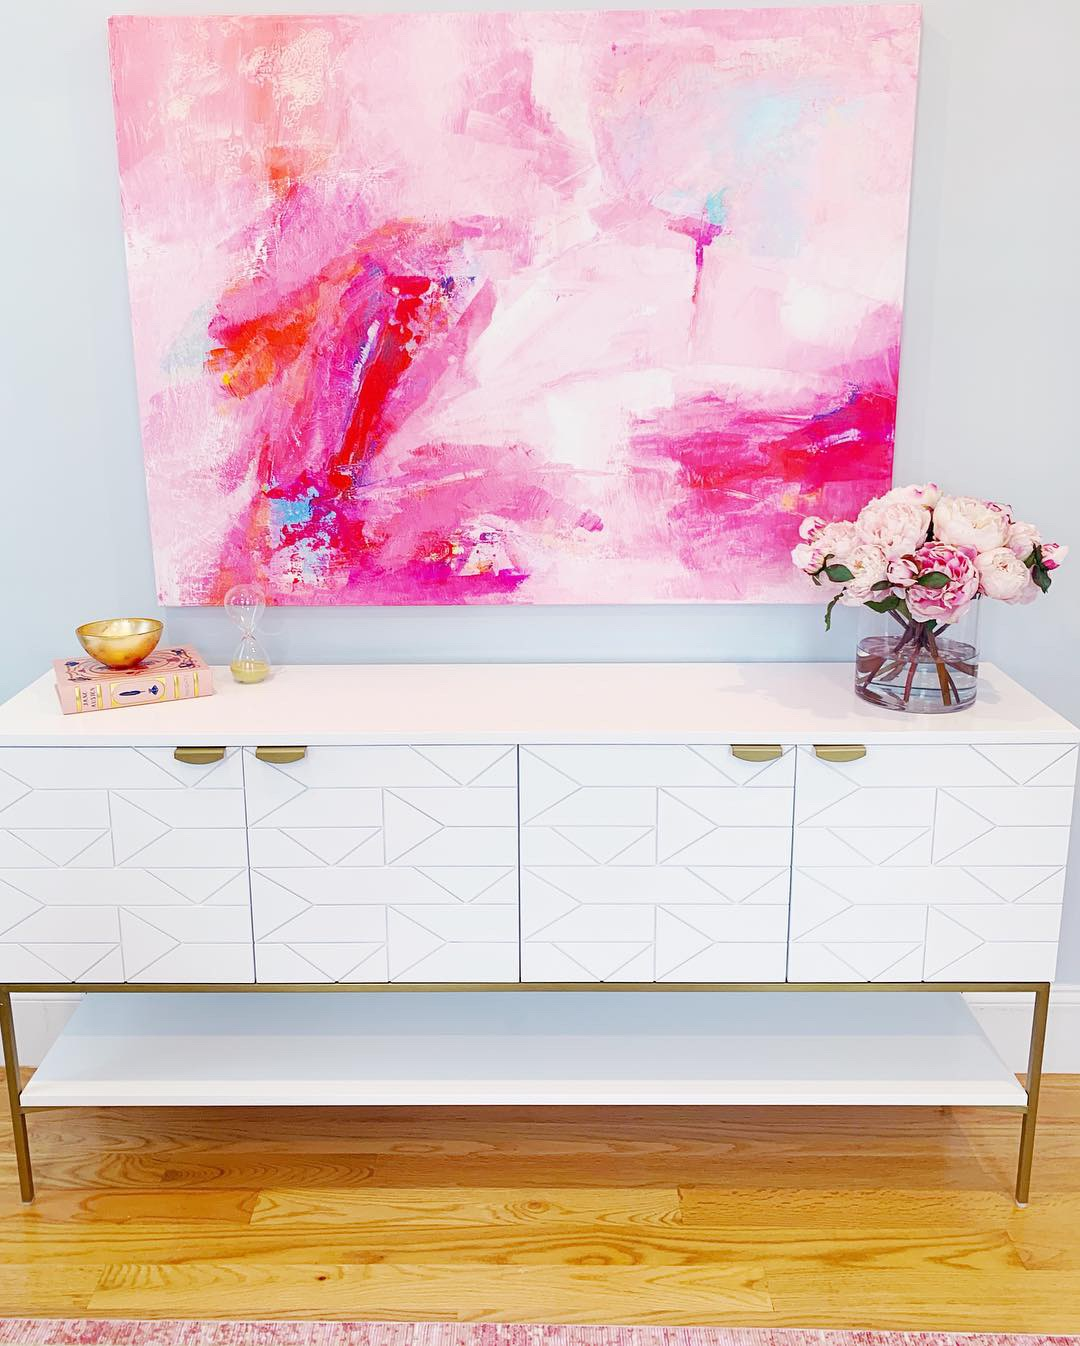 White console table with pink painting above.